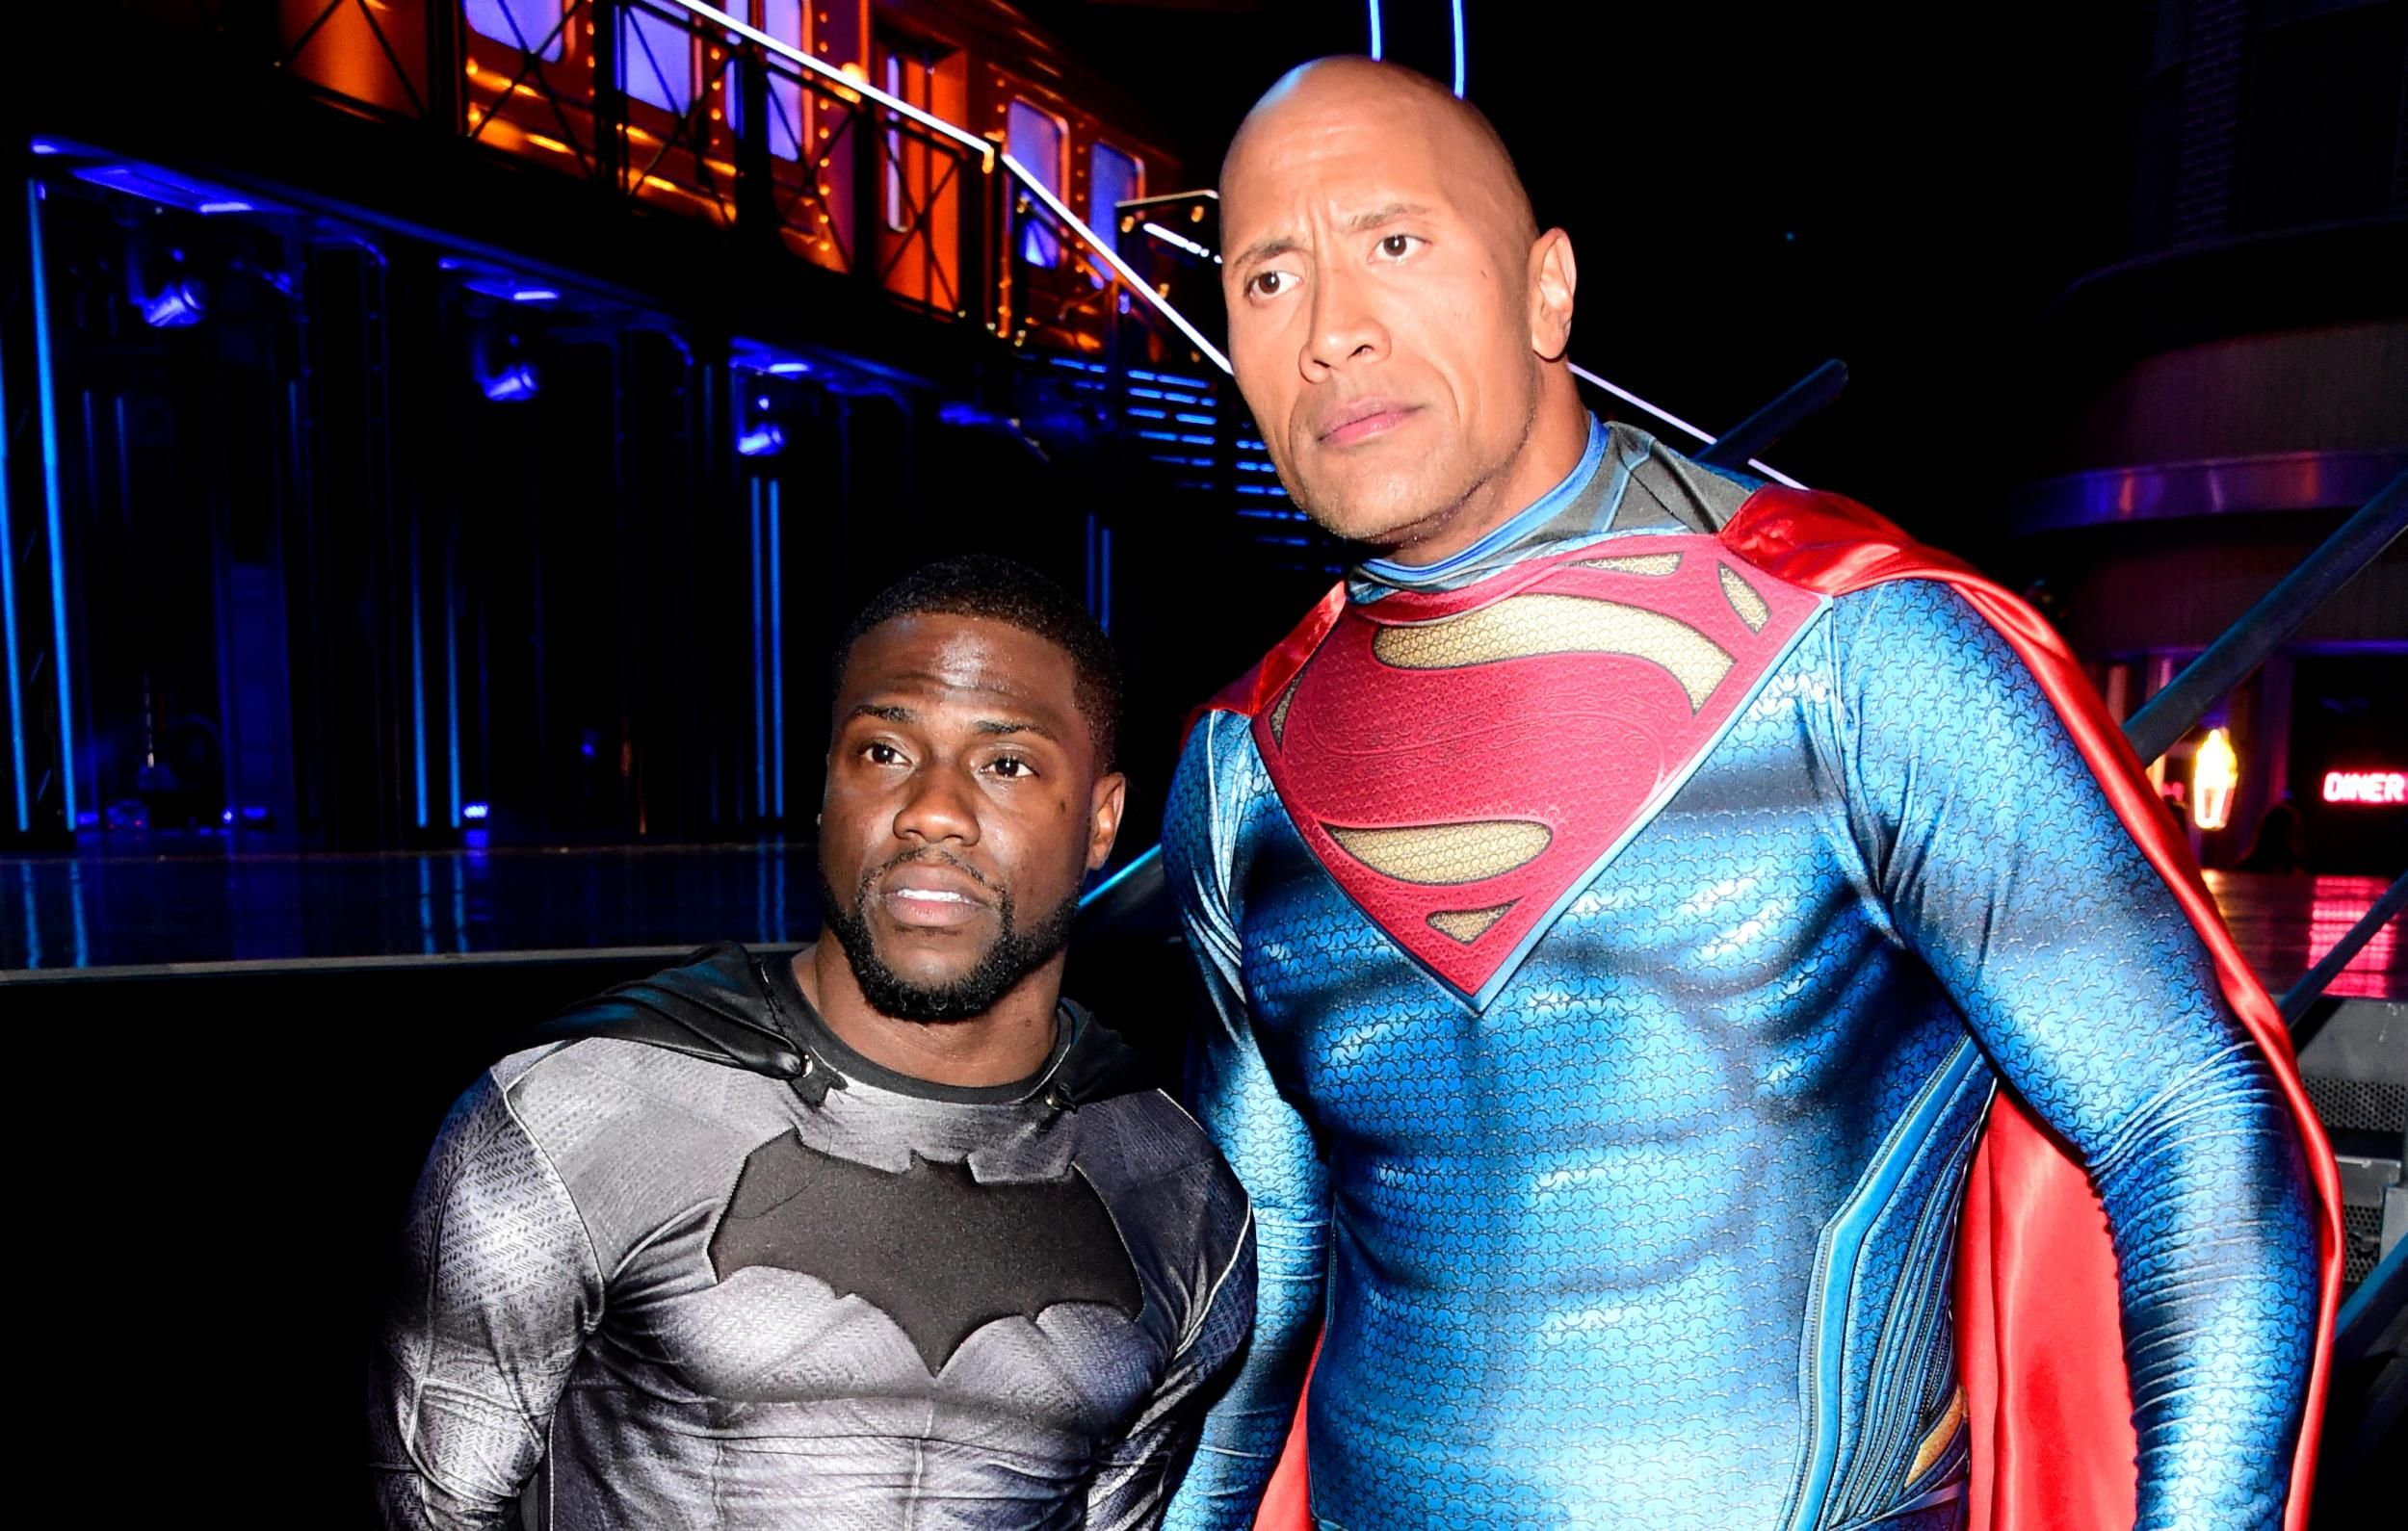 kevin hart with dwayne johnson wearing super hero costumesa great